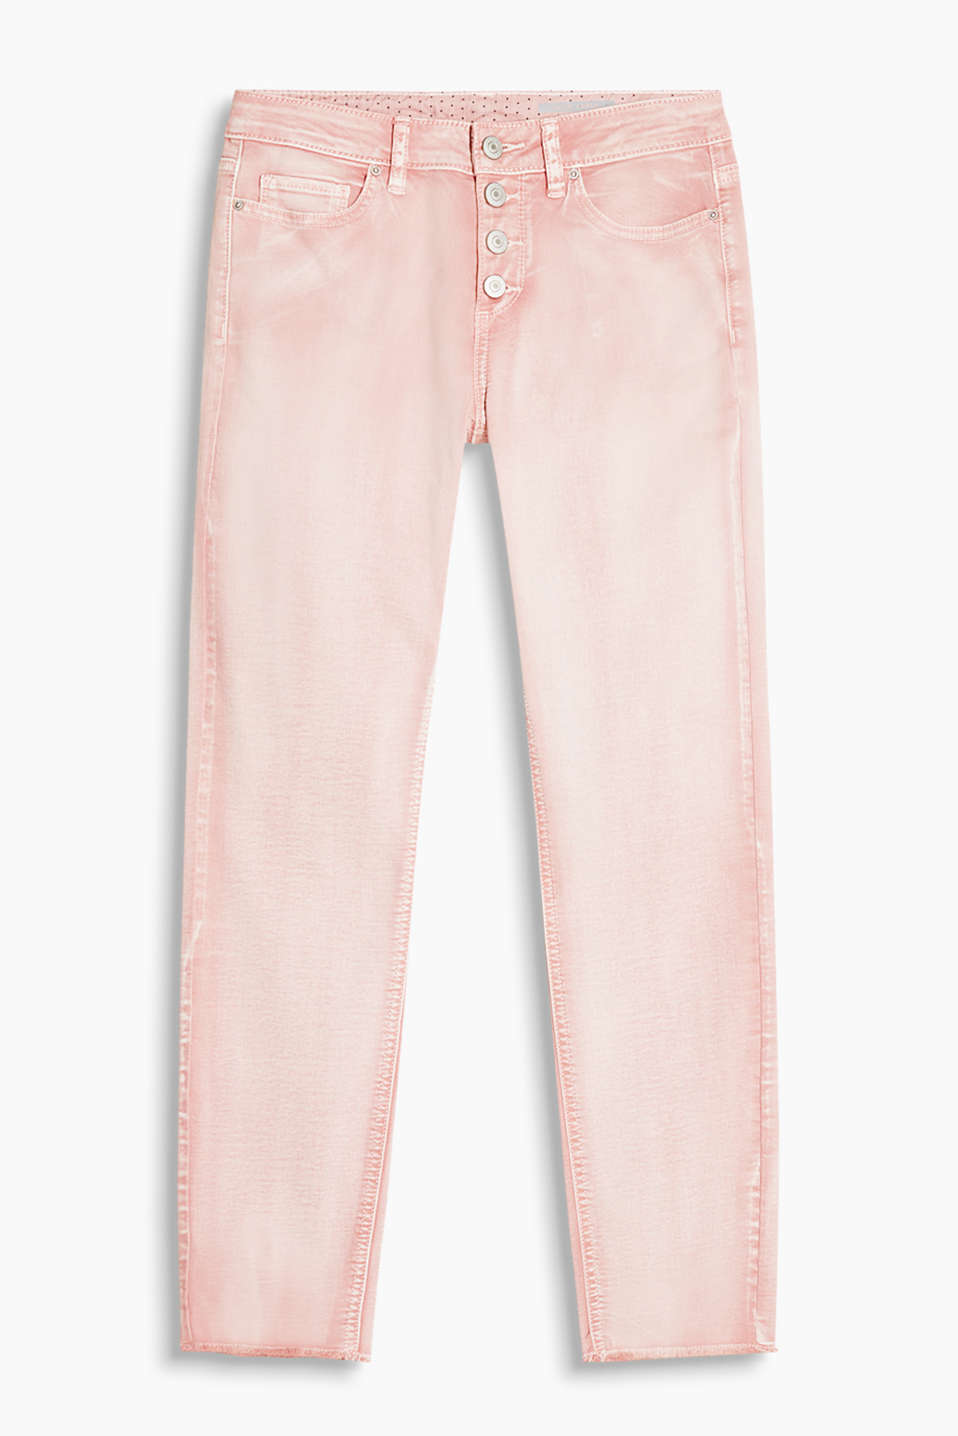 Cropped trousers in stretch cotton with a visible button placket and a cool, trendy dye